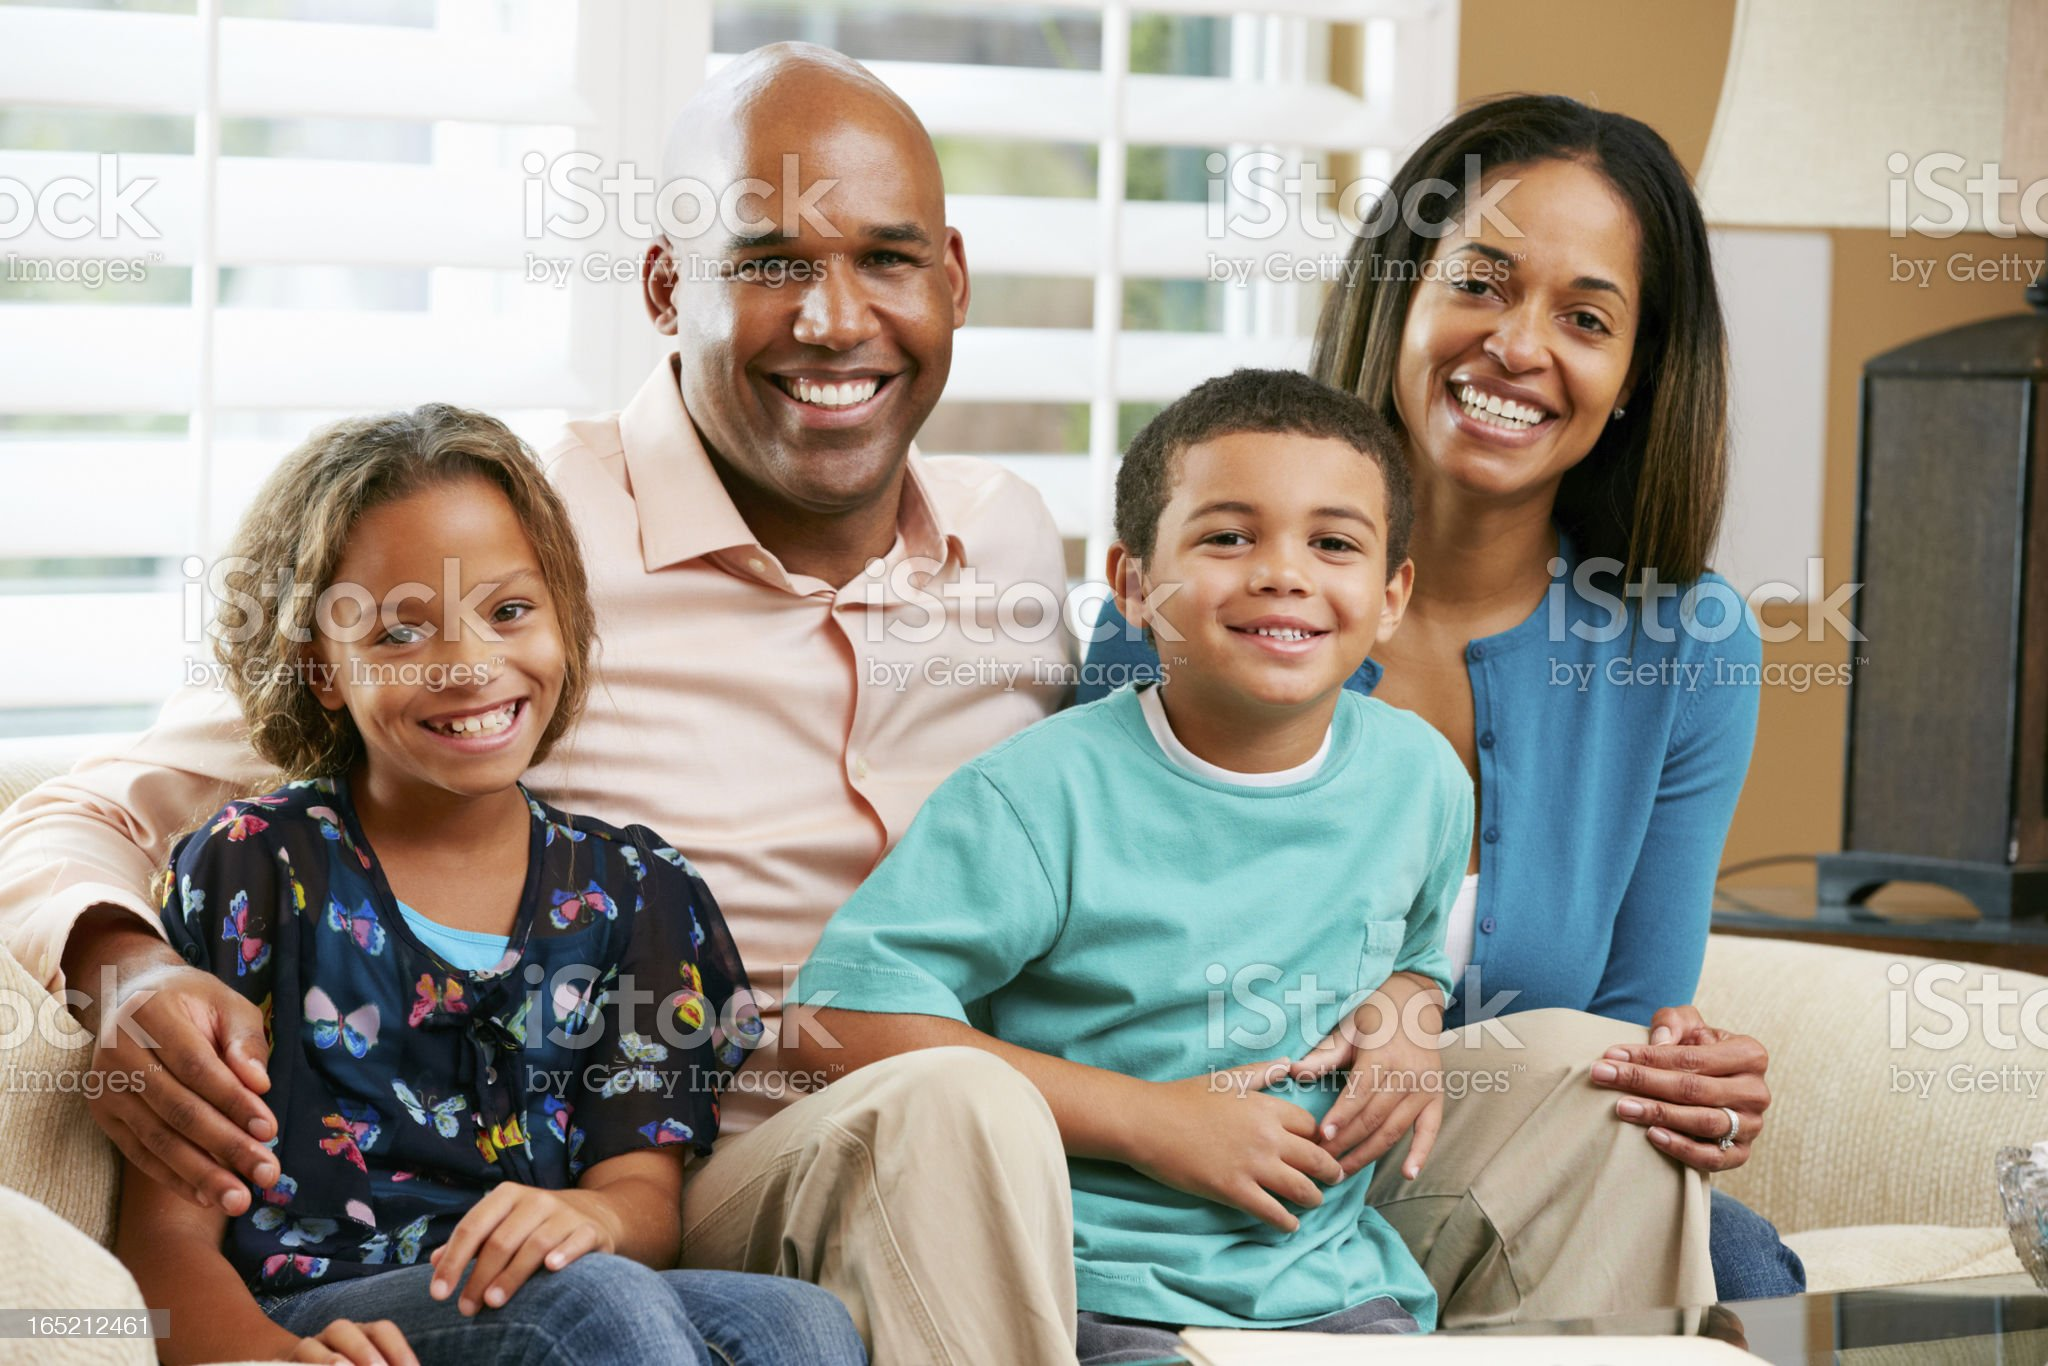 Portrait Of Family Sitting On Sofa Together royalty-free stock photo